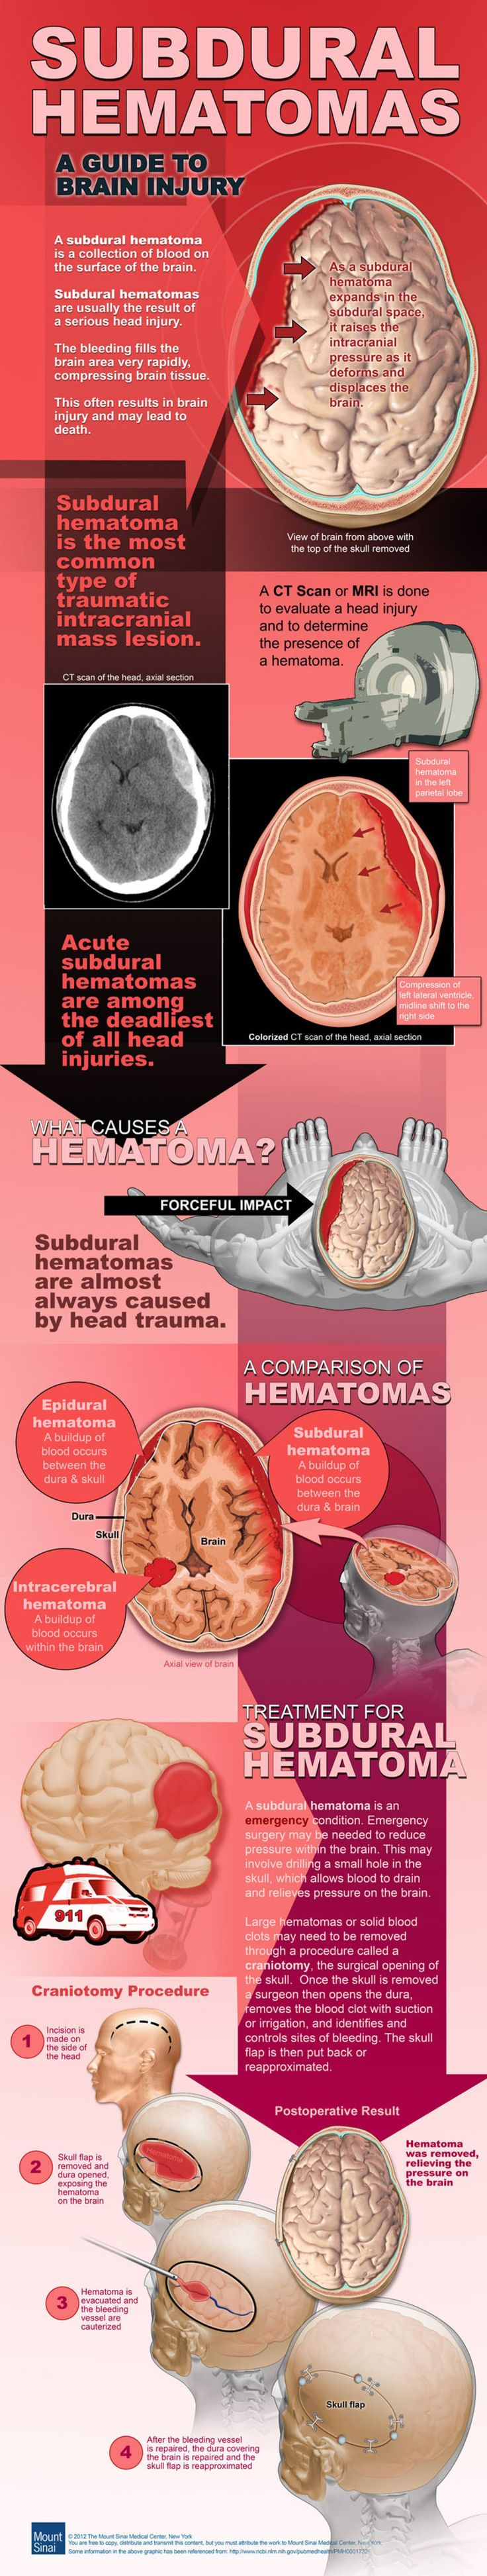 A Guide to Brain Injury and Subdural Hematoma  #Infographic #infografía